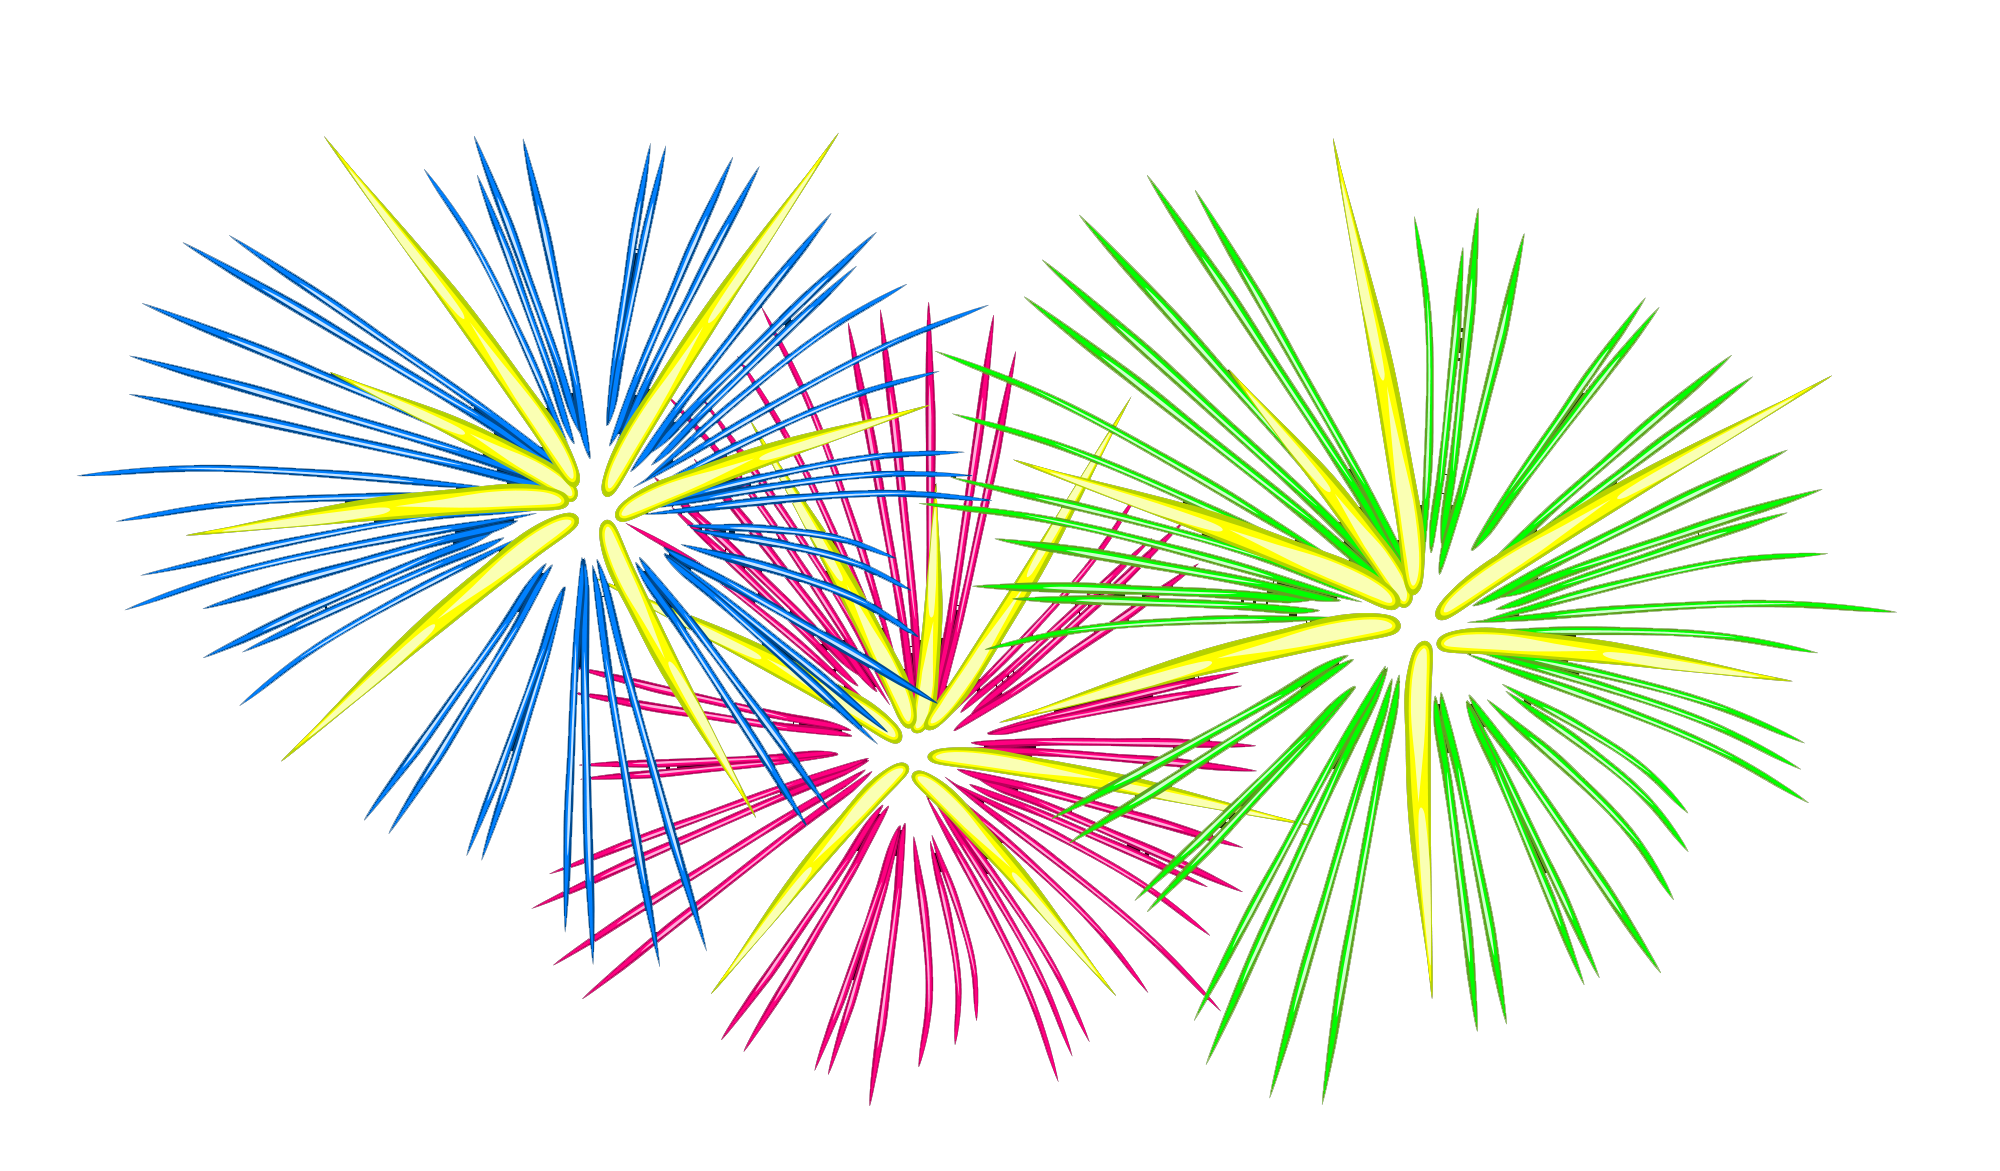 Fireworks clipart #9, Download drawings